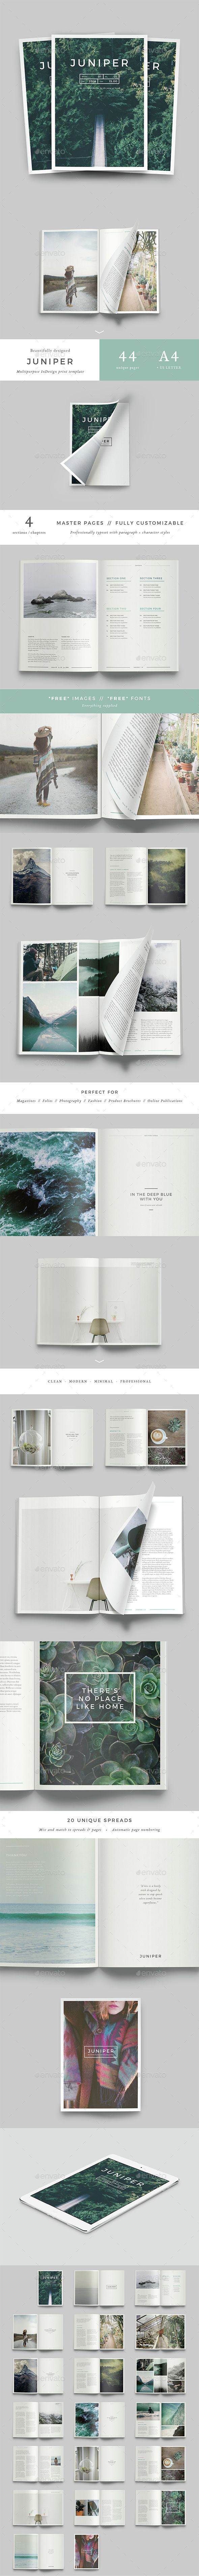 Juniper Magazine / Portfolio Template InDesign INDD. Download here: http://graphicriver.net/item/juniper-magazine-portfolio/14880769?ref=ksioks